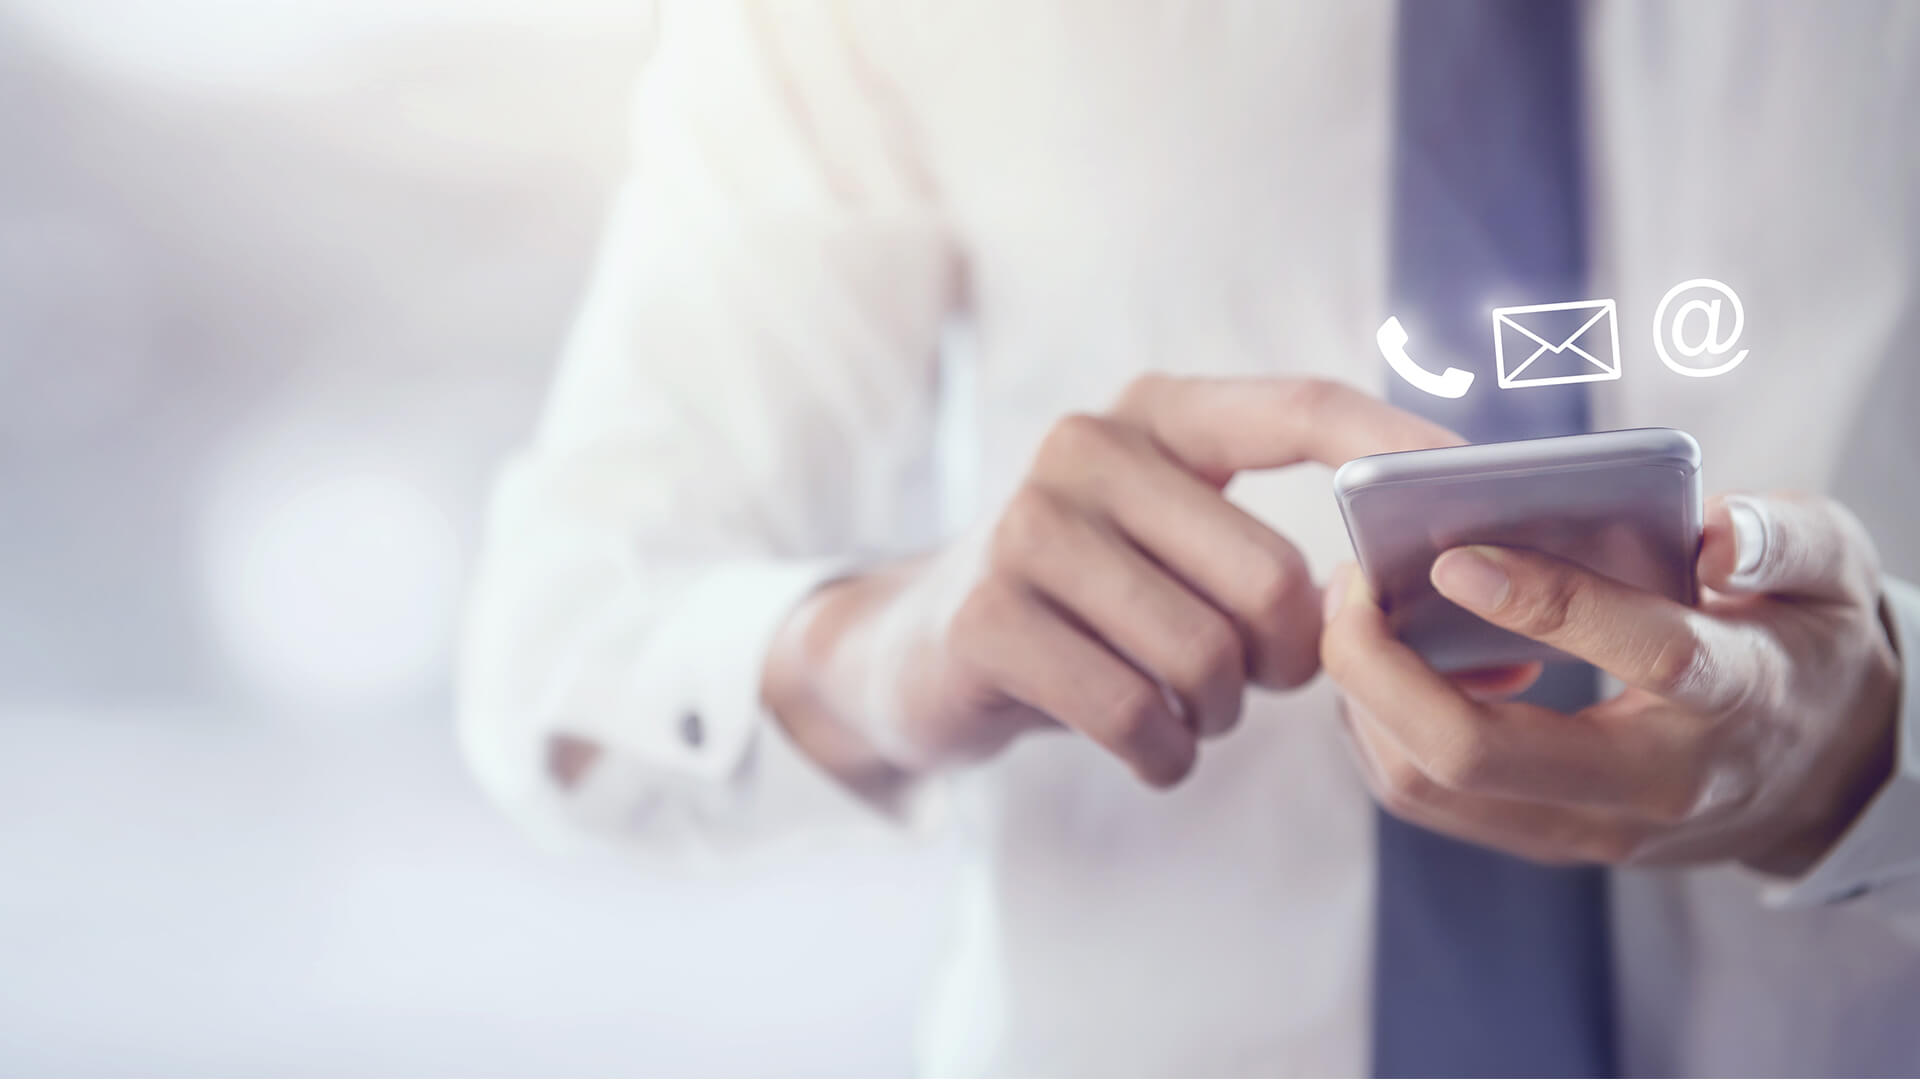 Man using a phone and phone and email icons